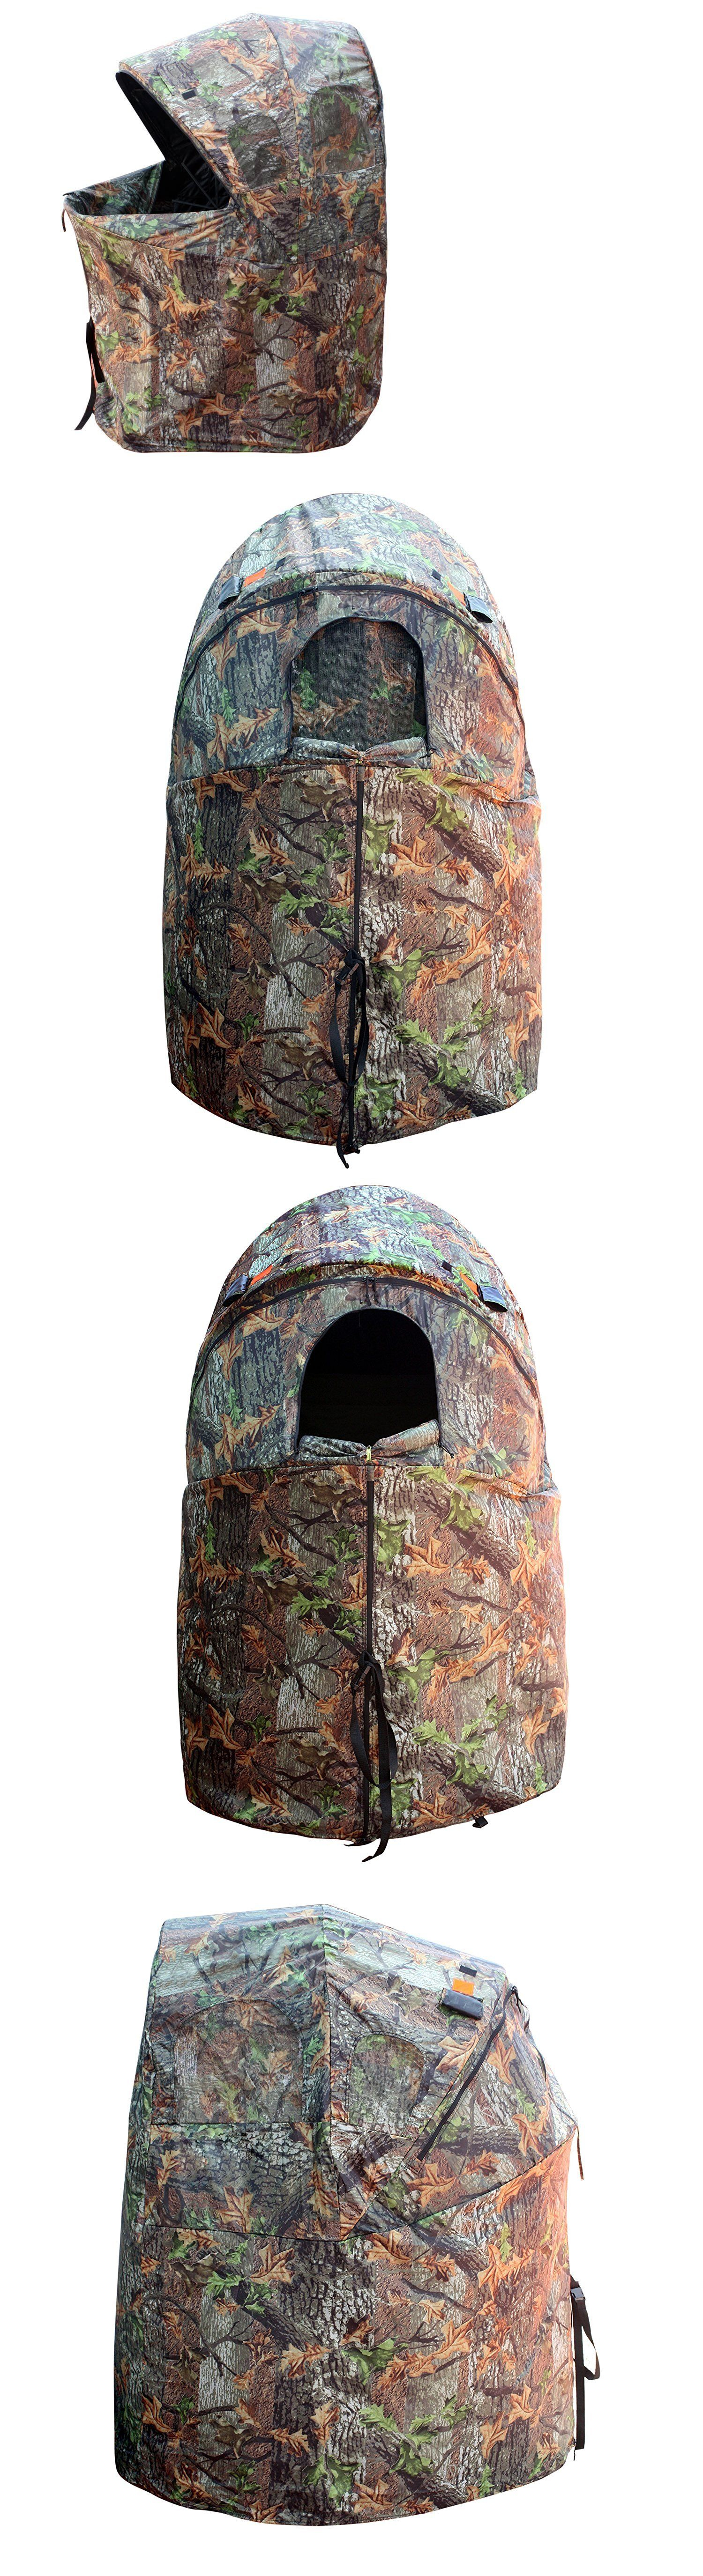 tower xt biz cedar primos with mike plastic blind tree carry page img ground blinds big hunting stands drop hay endico box redneck muddy barronett smoky shooter cop led of inc